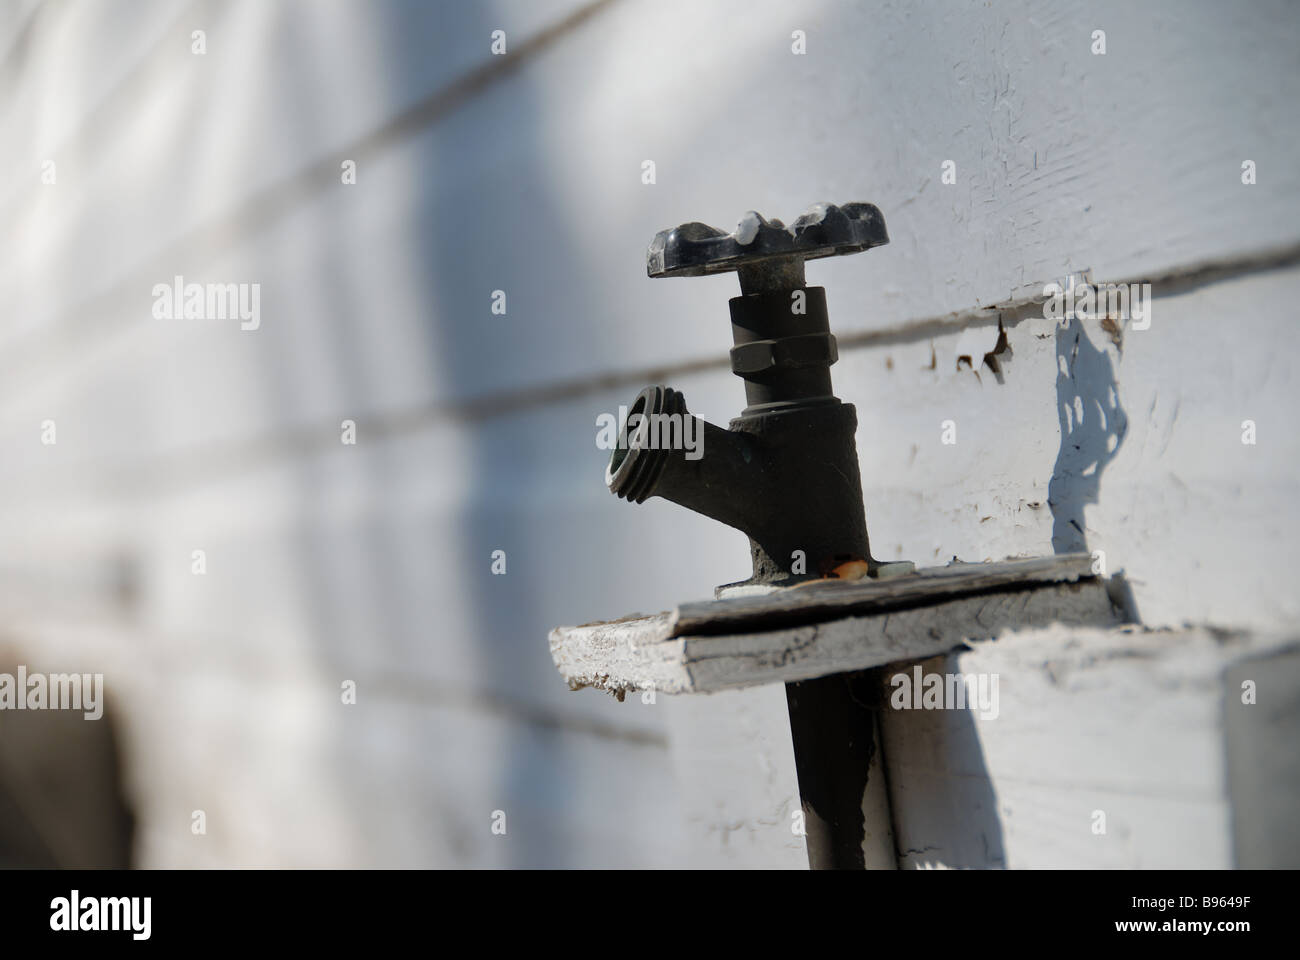 Leaky Outdoor Water Tap Stock Photos & Leaky Outdoor Water Tap Stock ...